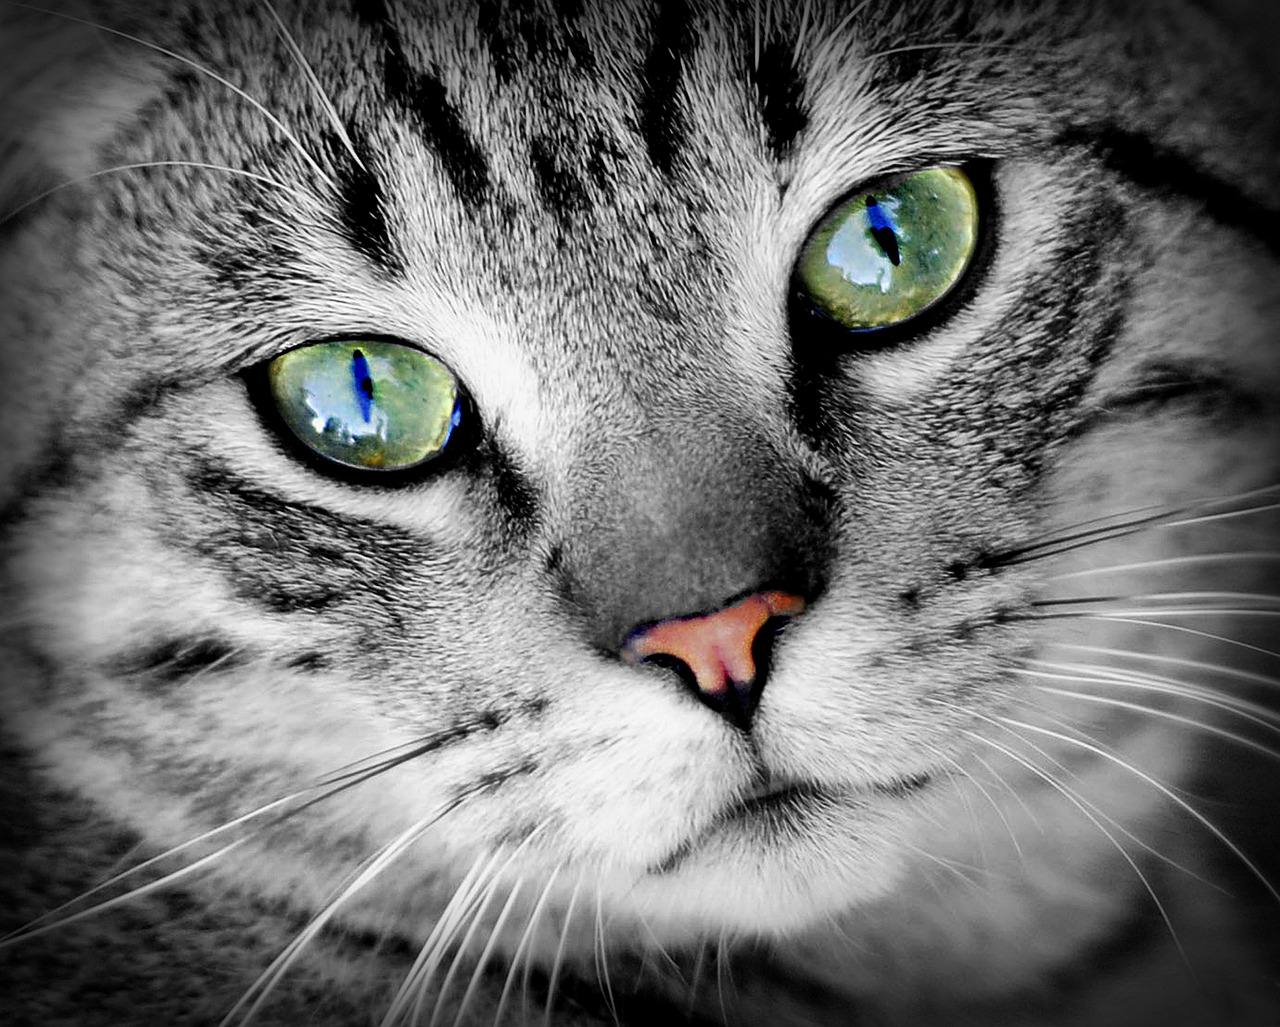 Cats, snakes, and alligators have Vertically elongated pupils to enhance depth perception for hunting. -